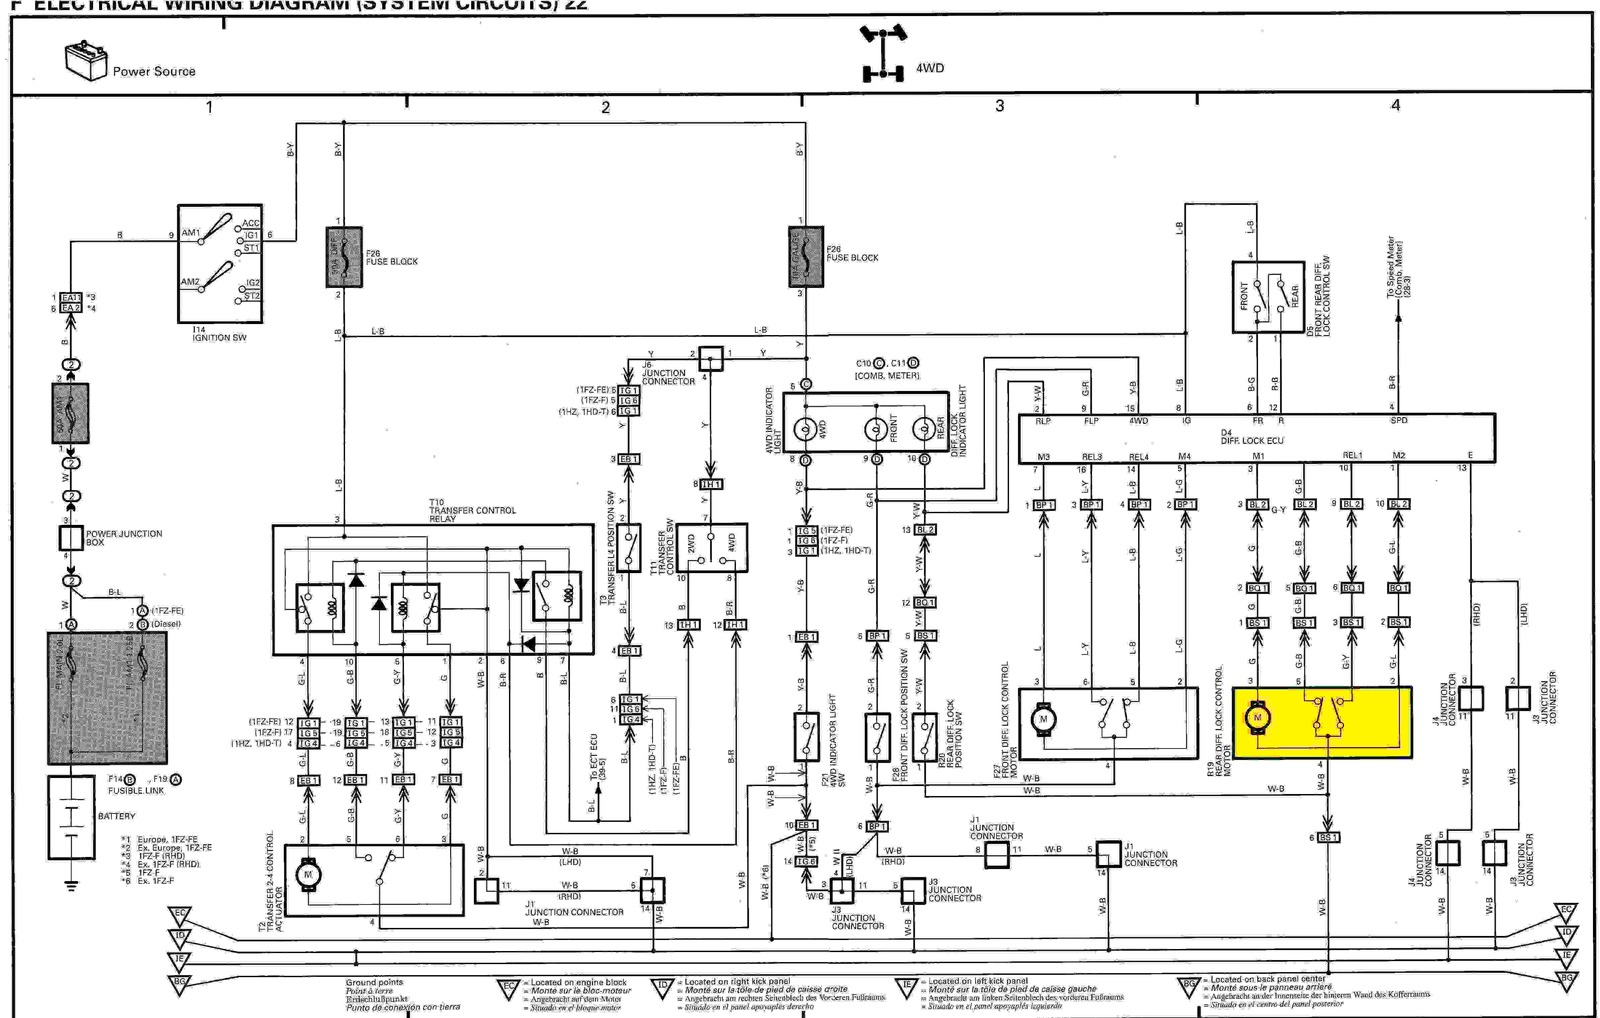 Electrical Wiring Diagrams Toyota Land Cruiser Vdj79 Library Landcruiser 100 Series Diagram Download 4wdwiringdiagram